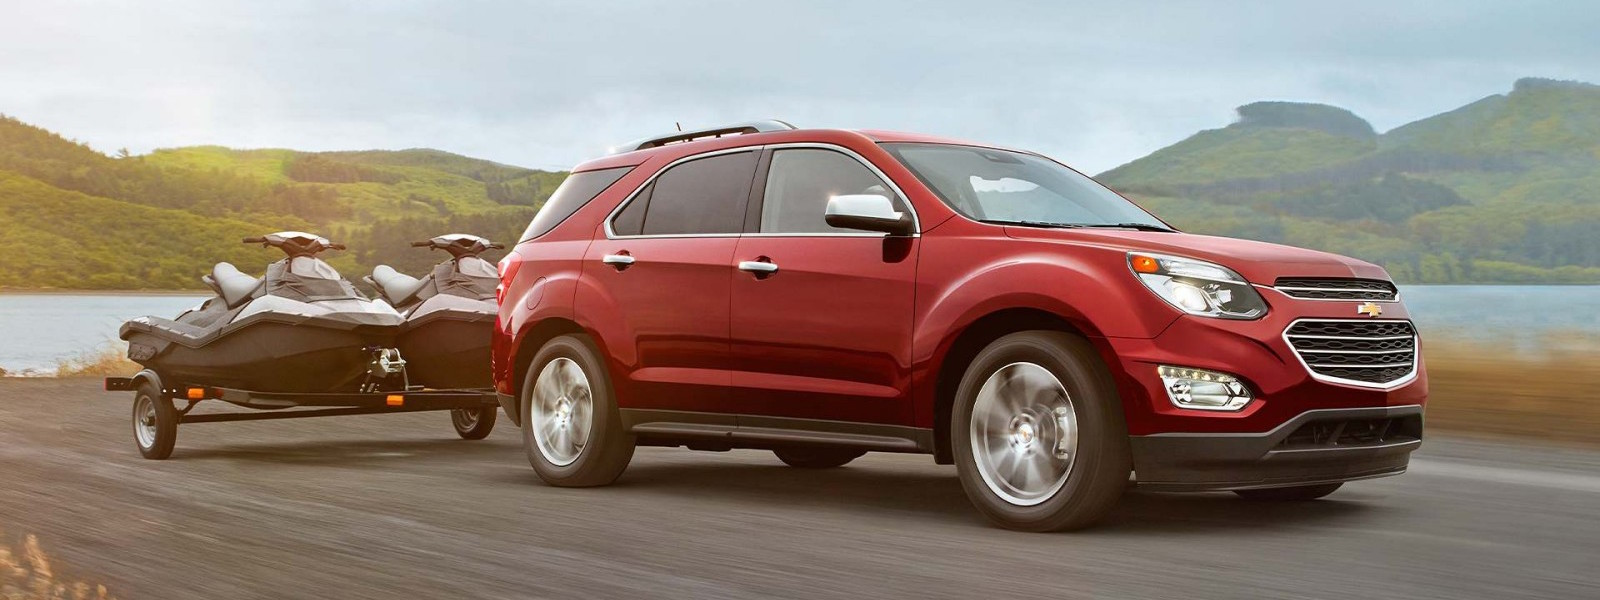 Red 2016 Chevy Equinox Towing cargo